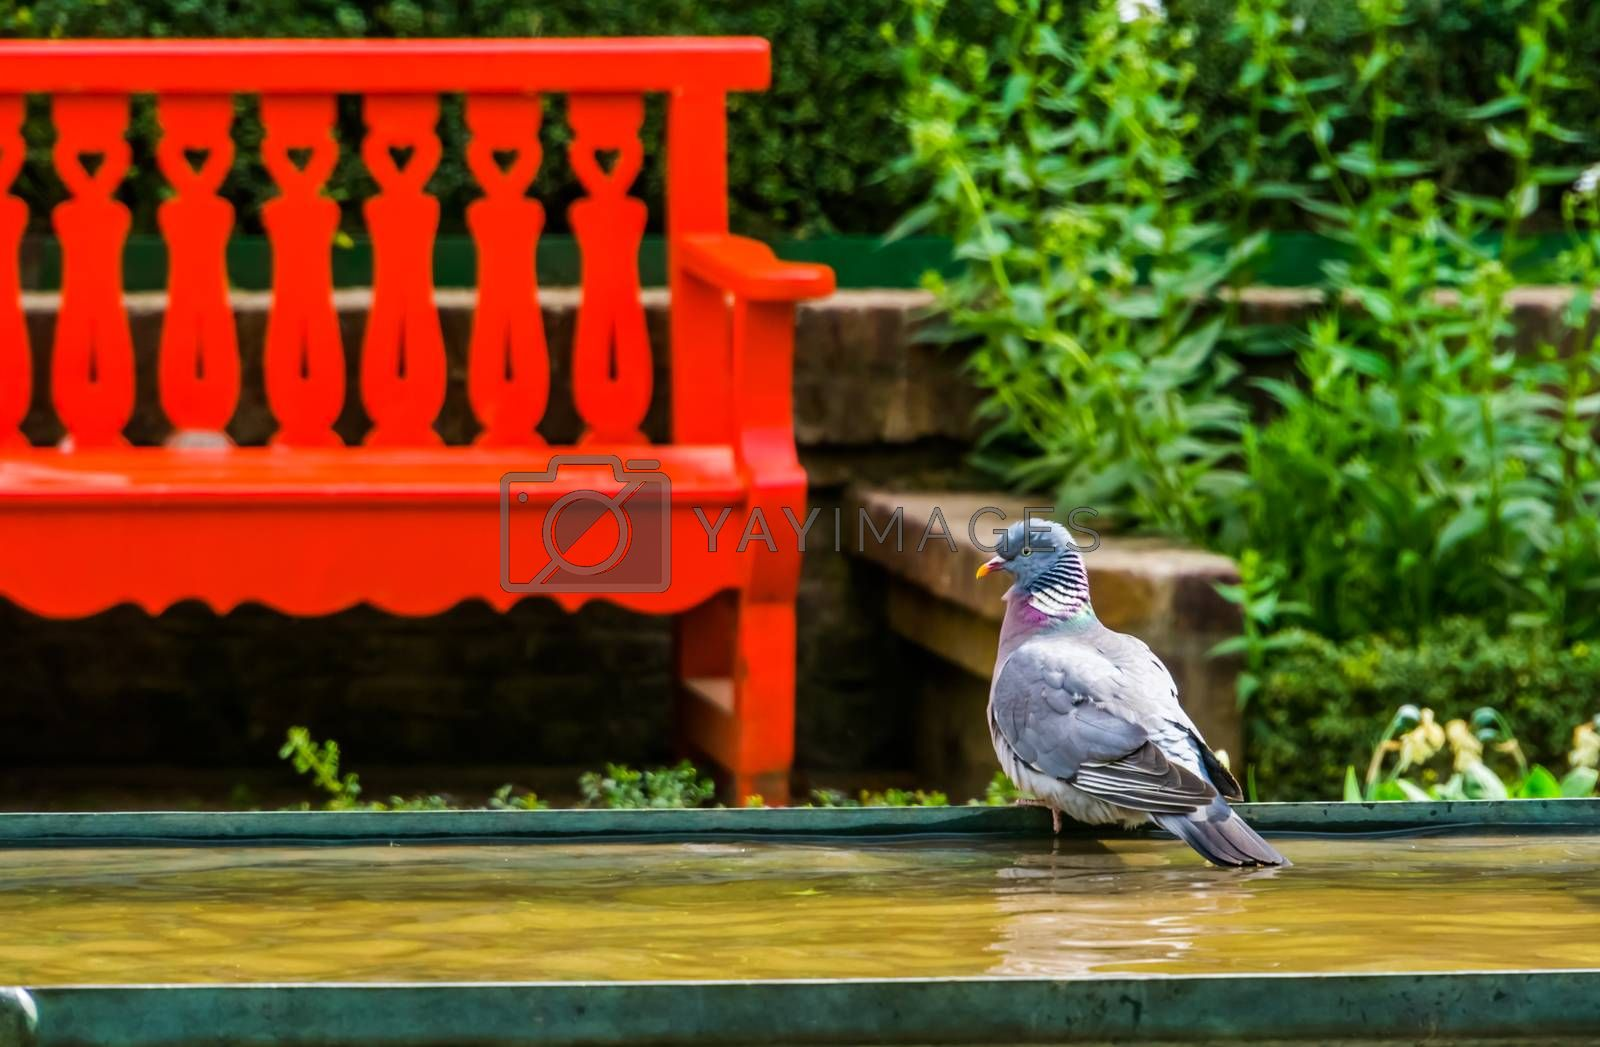 common wood dove sitting at the water side in the park, Bird species from Eurasia